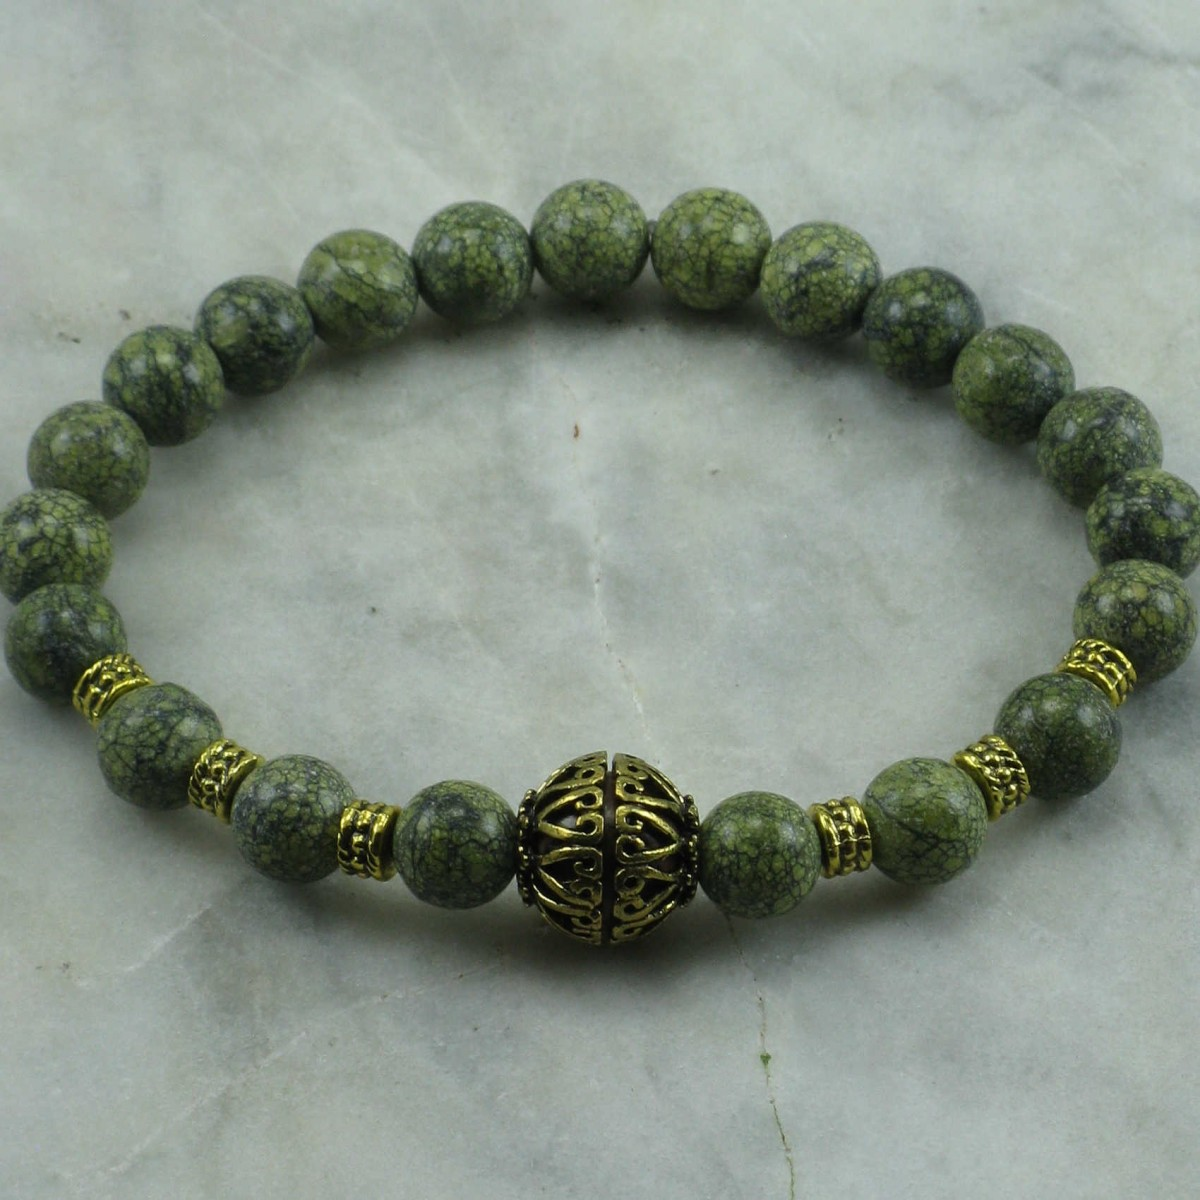 Dryad_Mala_Bracelet_21_Serpentine_Mala_Beads_Buddhist_Bracelet